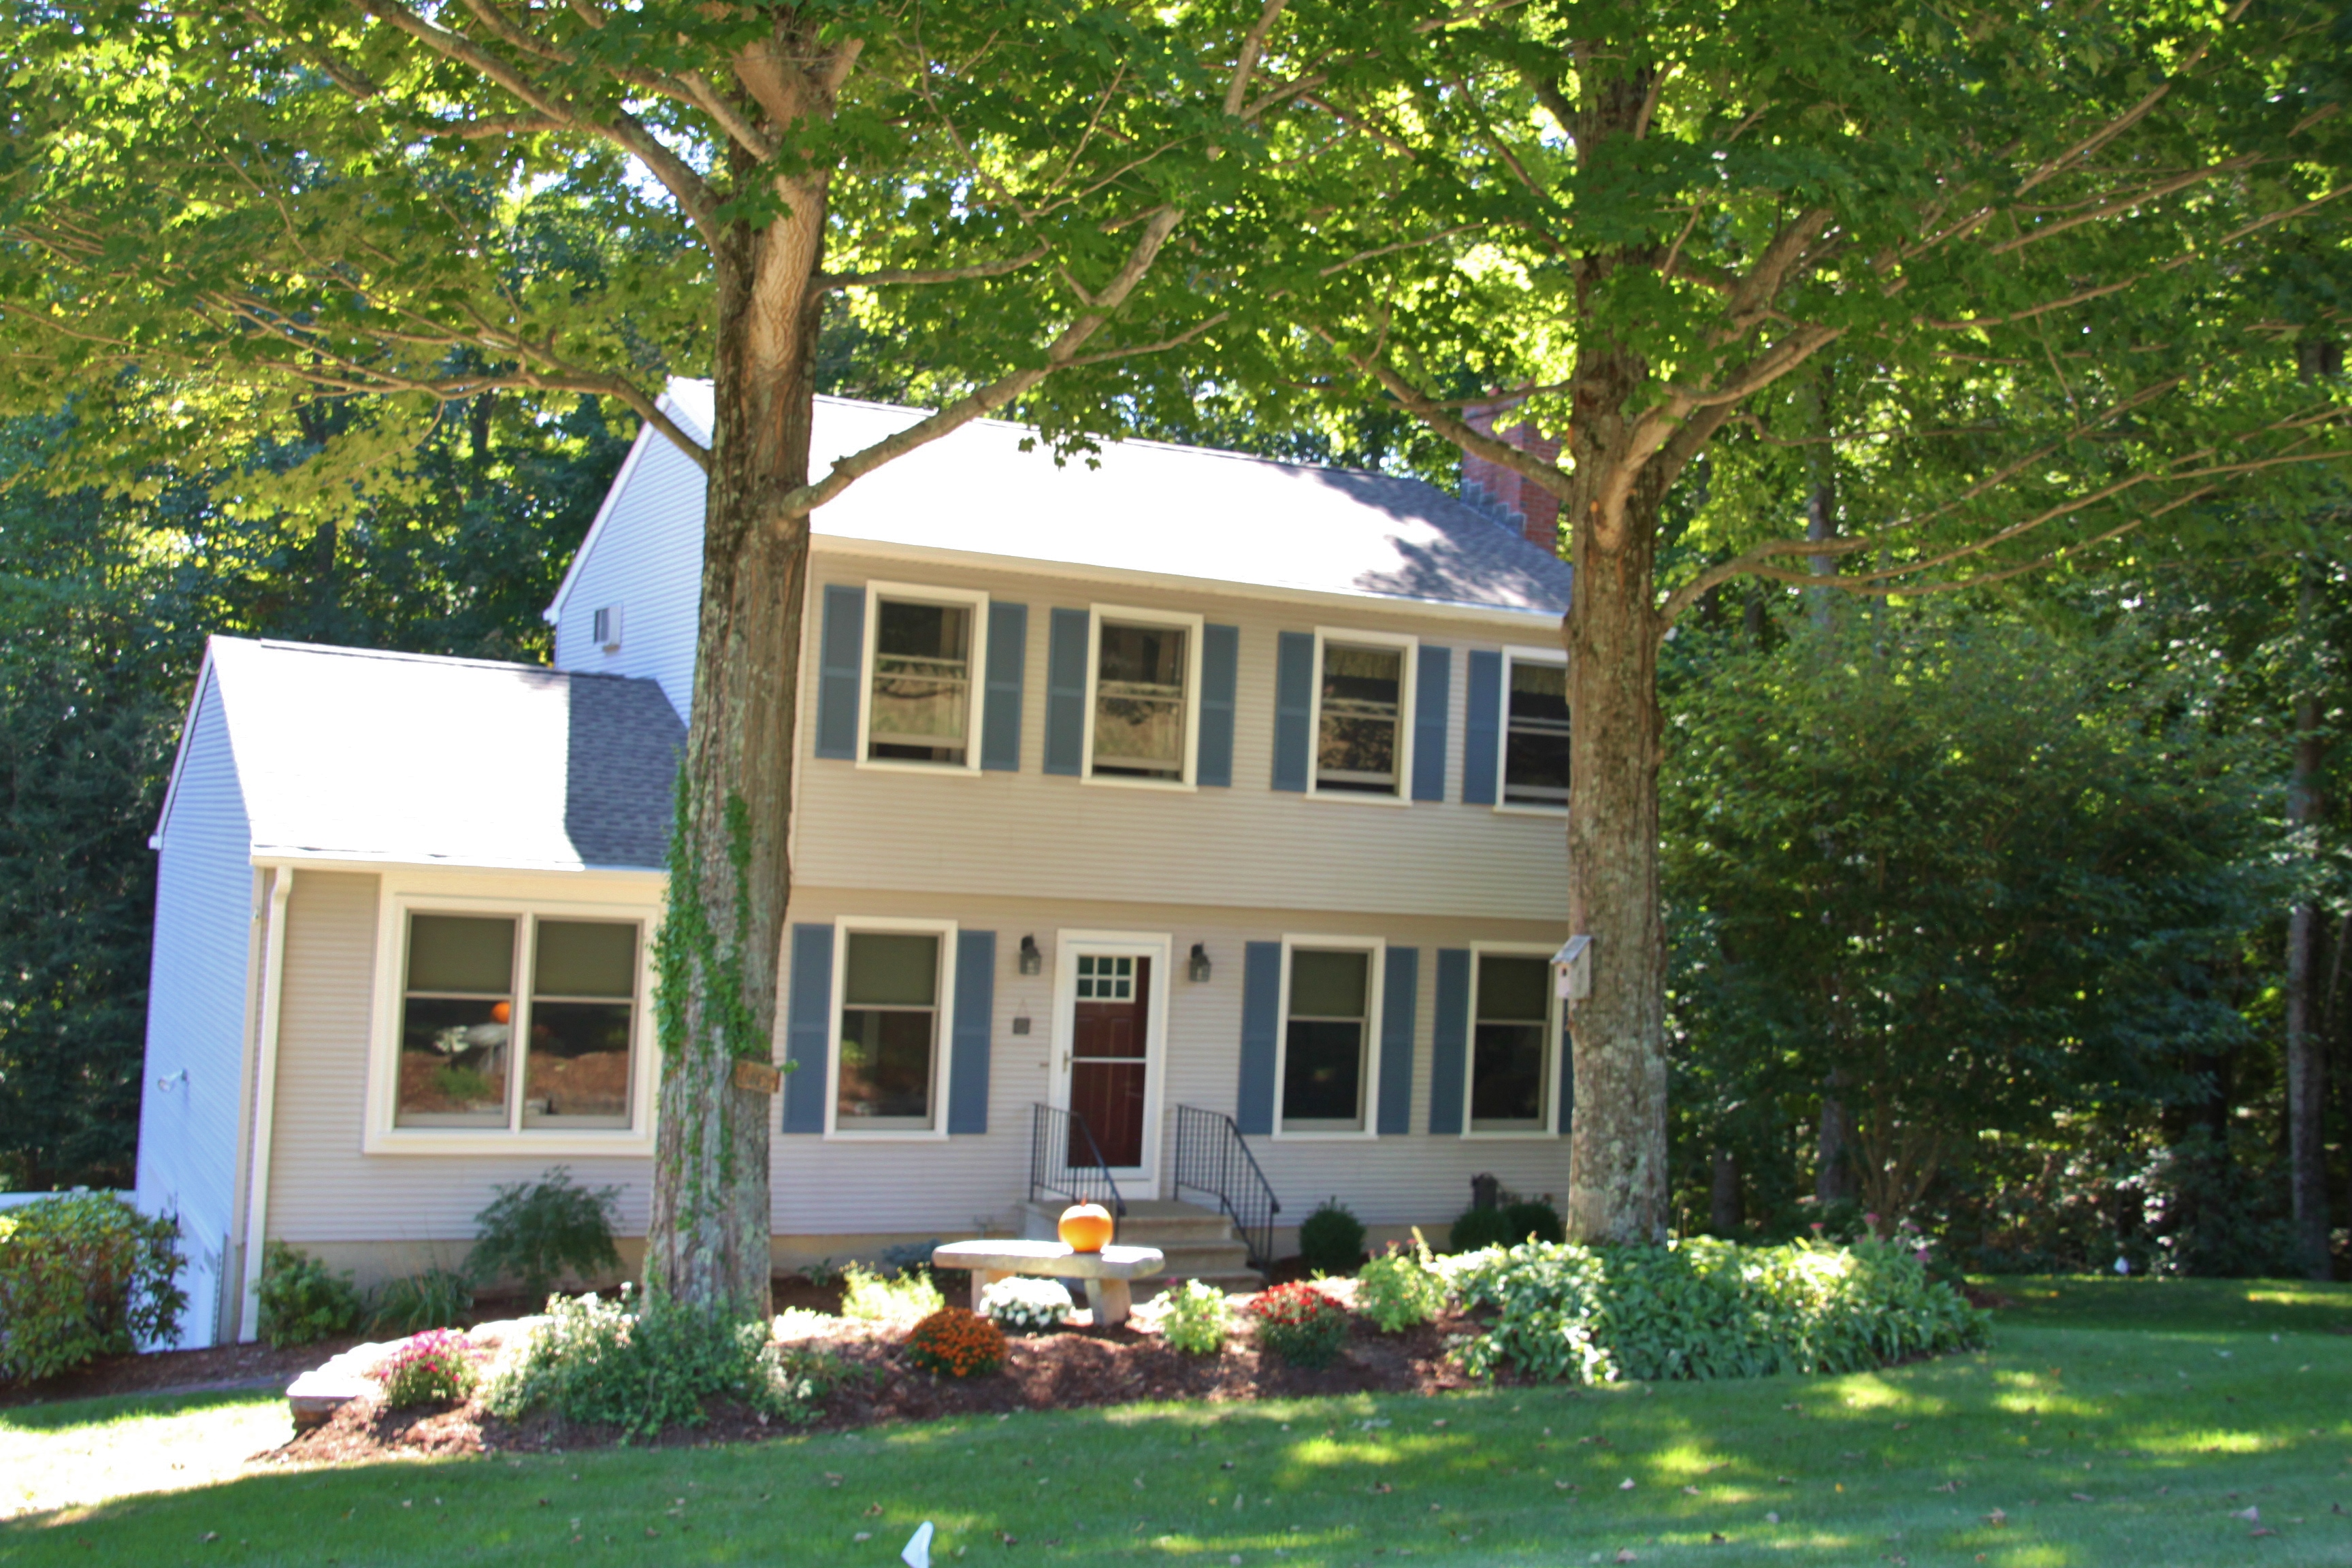 73 Mountain Ridge Rd., Coventry, Connecticut 06238